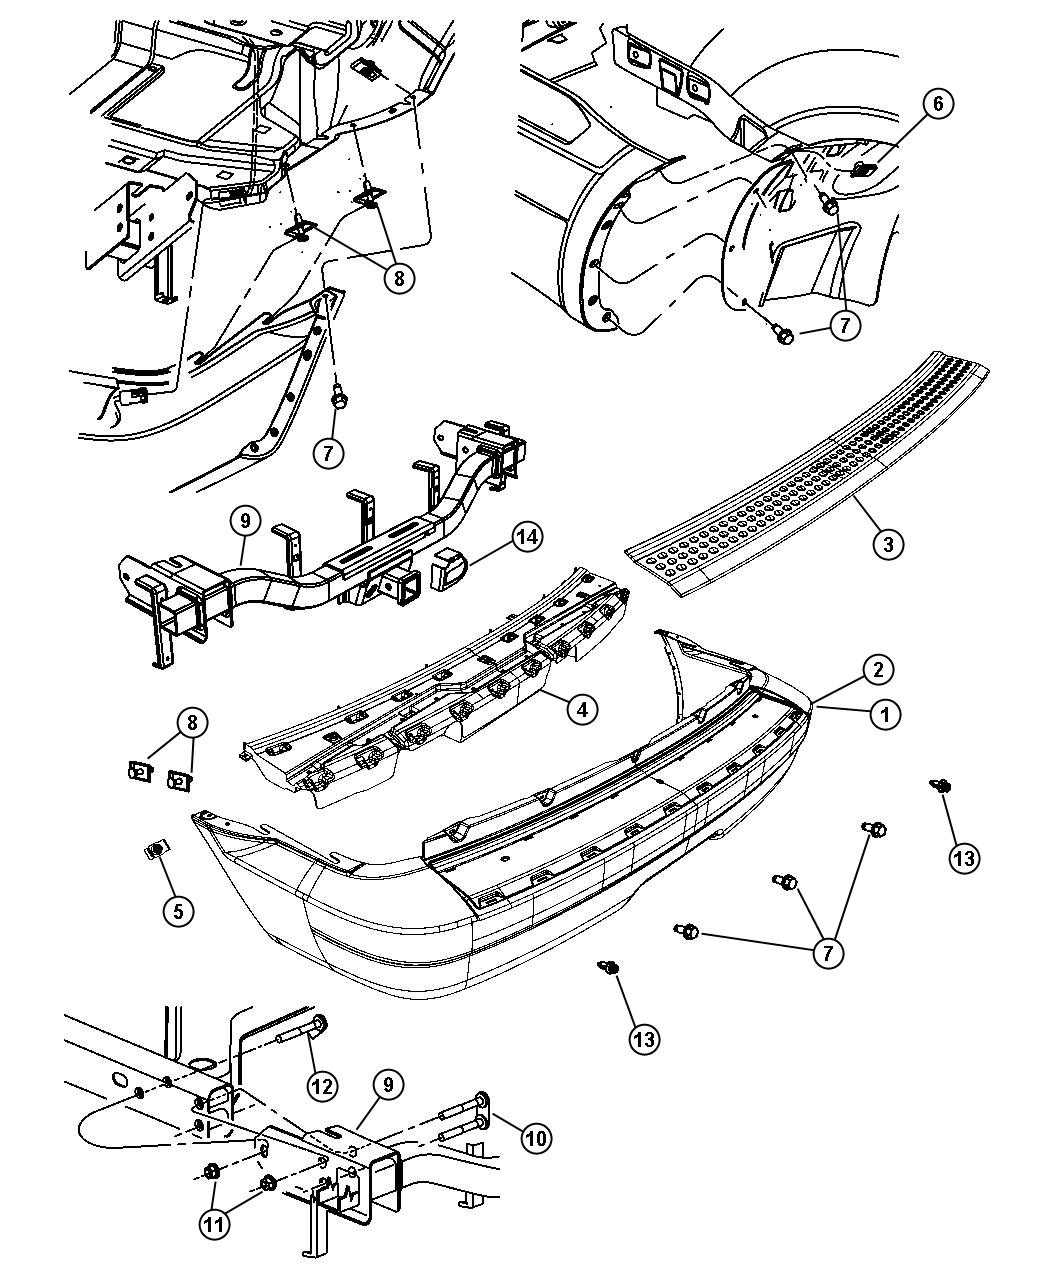 2004 Dodge Durango Rear Bumper Parts Diagram